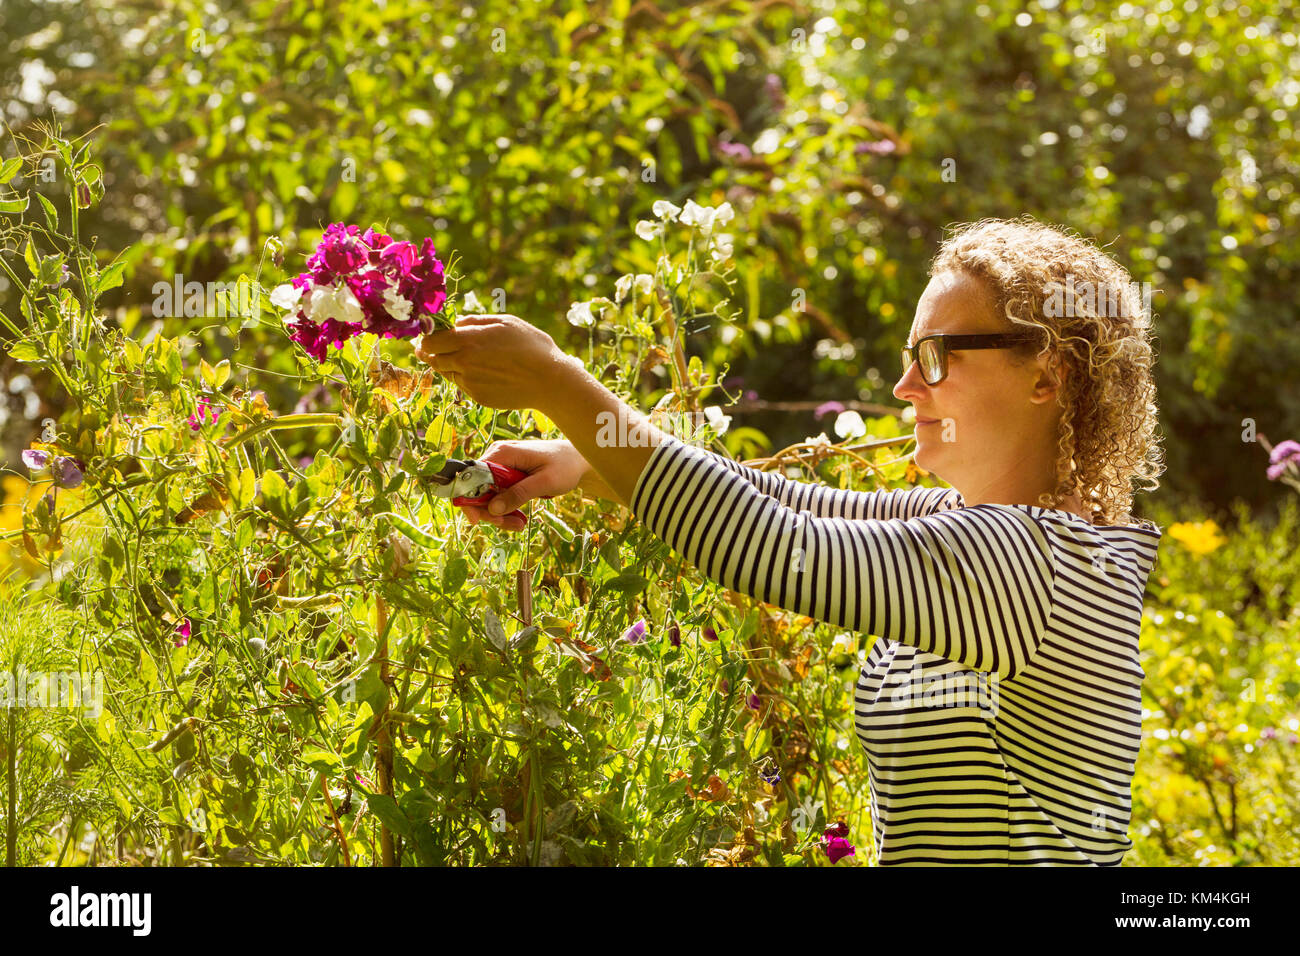 Side view of woman standing in a garden in summer, cutting pink sweetpeas. - Stock Image